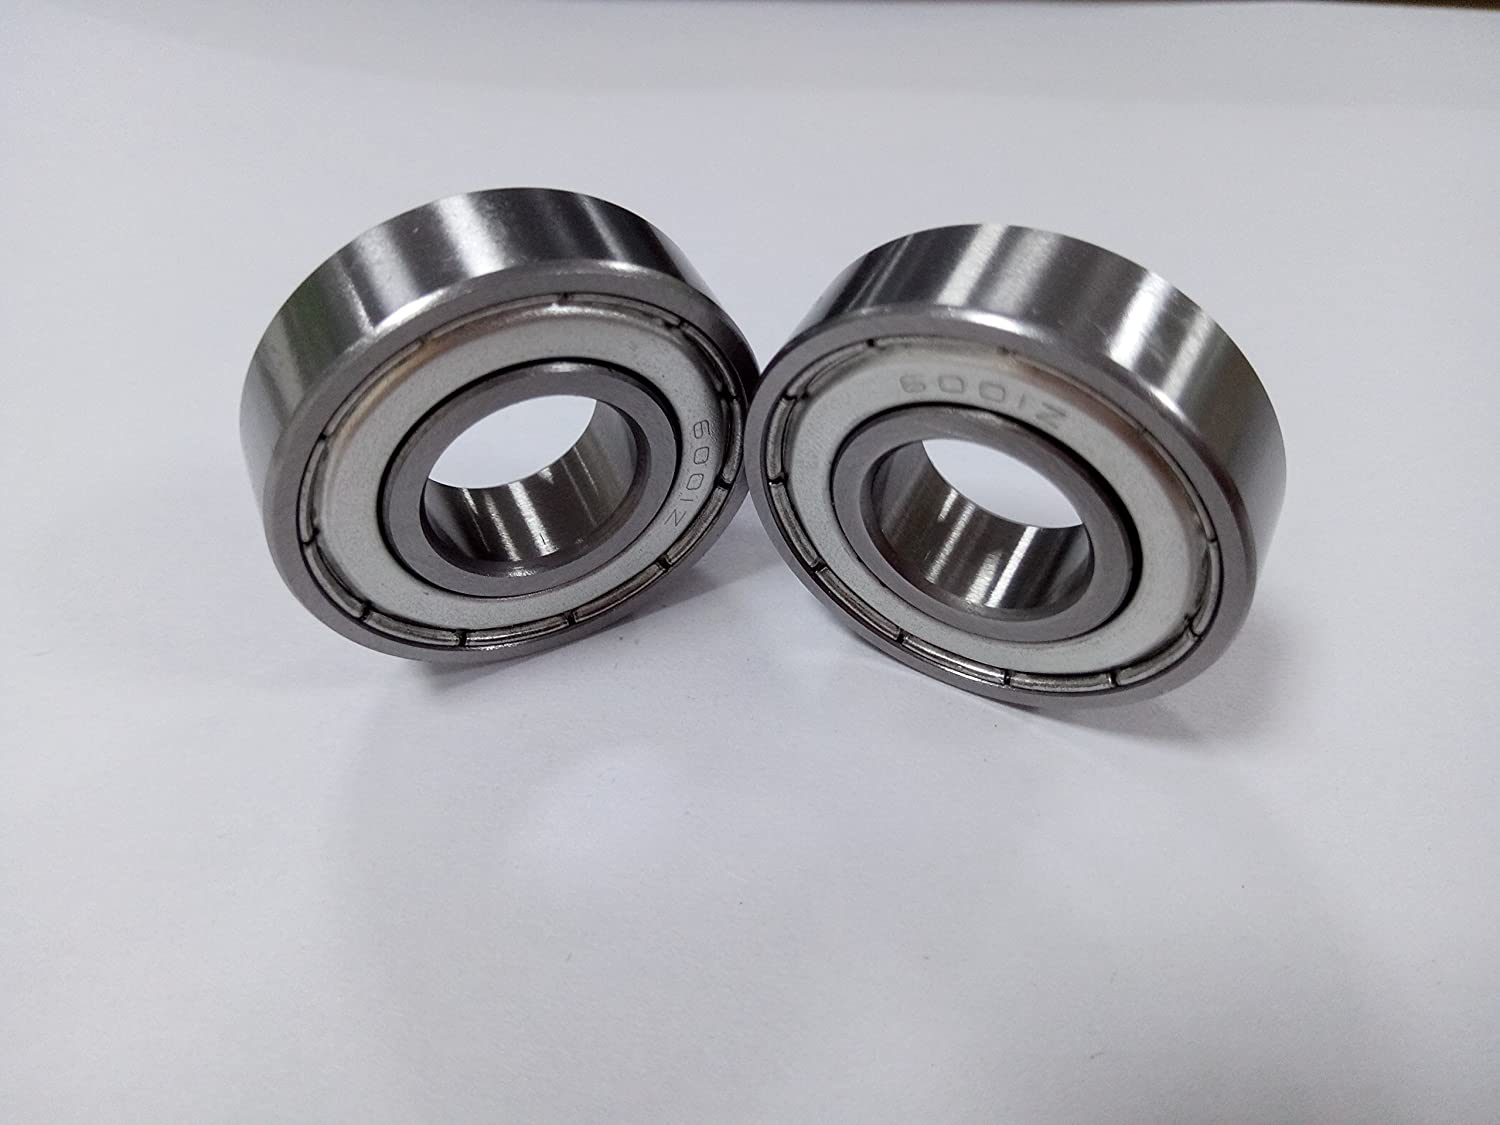 6001ZZ Radial Deep Groove Ball Bearings Precision ID 12mm OD x 28mm //8mm Quality